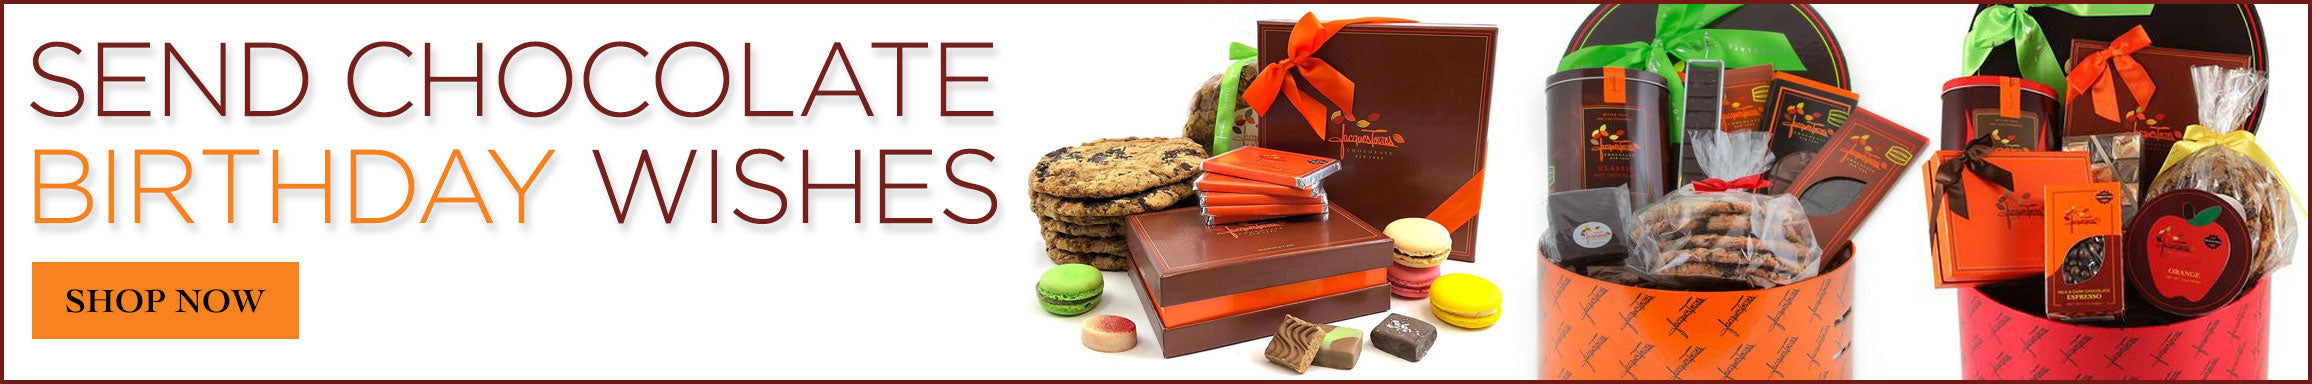 Send Birthday Wishes with Jacques Torres Birthday Bundles